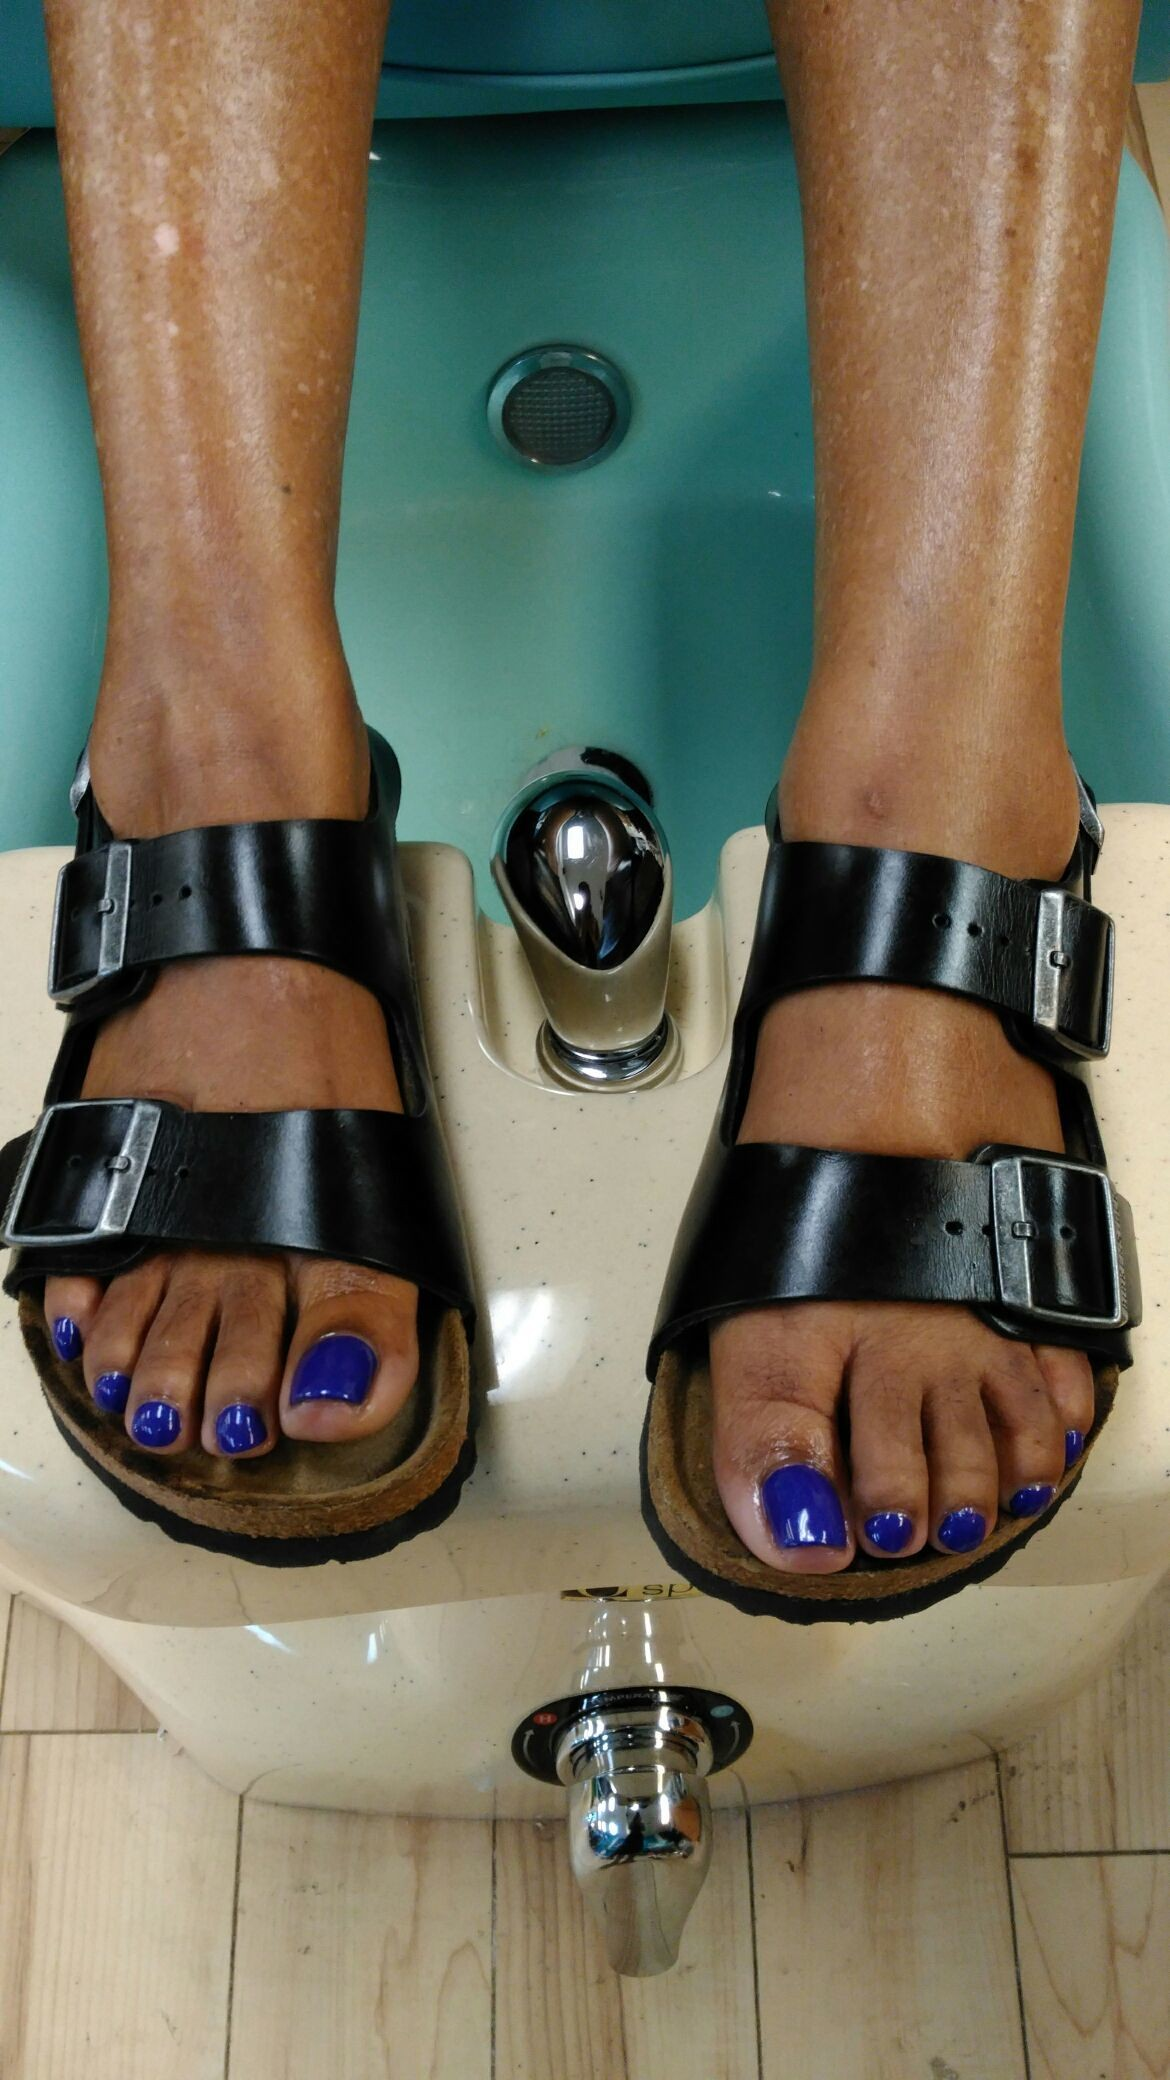 Thank u so much Ms. Dorothy for getting your #toes done with #ThaPolishQueen today! #ComeSeeMe #PrettyGurlsFeet #CleanBlackMasterNailTech #IDoNotRush #ITakeMyTime #UrMoneyWillBeWellSpent #YourToesMustBePerfectBeforeYouLeave #ComeExperienceMyHomemadeScrub #SpaologyNailSpa #ISupportBlackOwnedBusinesses Spaology Nail Spa & More 3000 Kavanaugh Blvd, Ste. C LR, AR 72205 To book your appointment email me @ PrettyGurlsFeet@gmail.com or call me at the salon @ 501.265.0303 or to book directly and purchase your service... Go to my website @ me on IG: @ms_beautiful_feet #ImWaitingOnYou